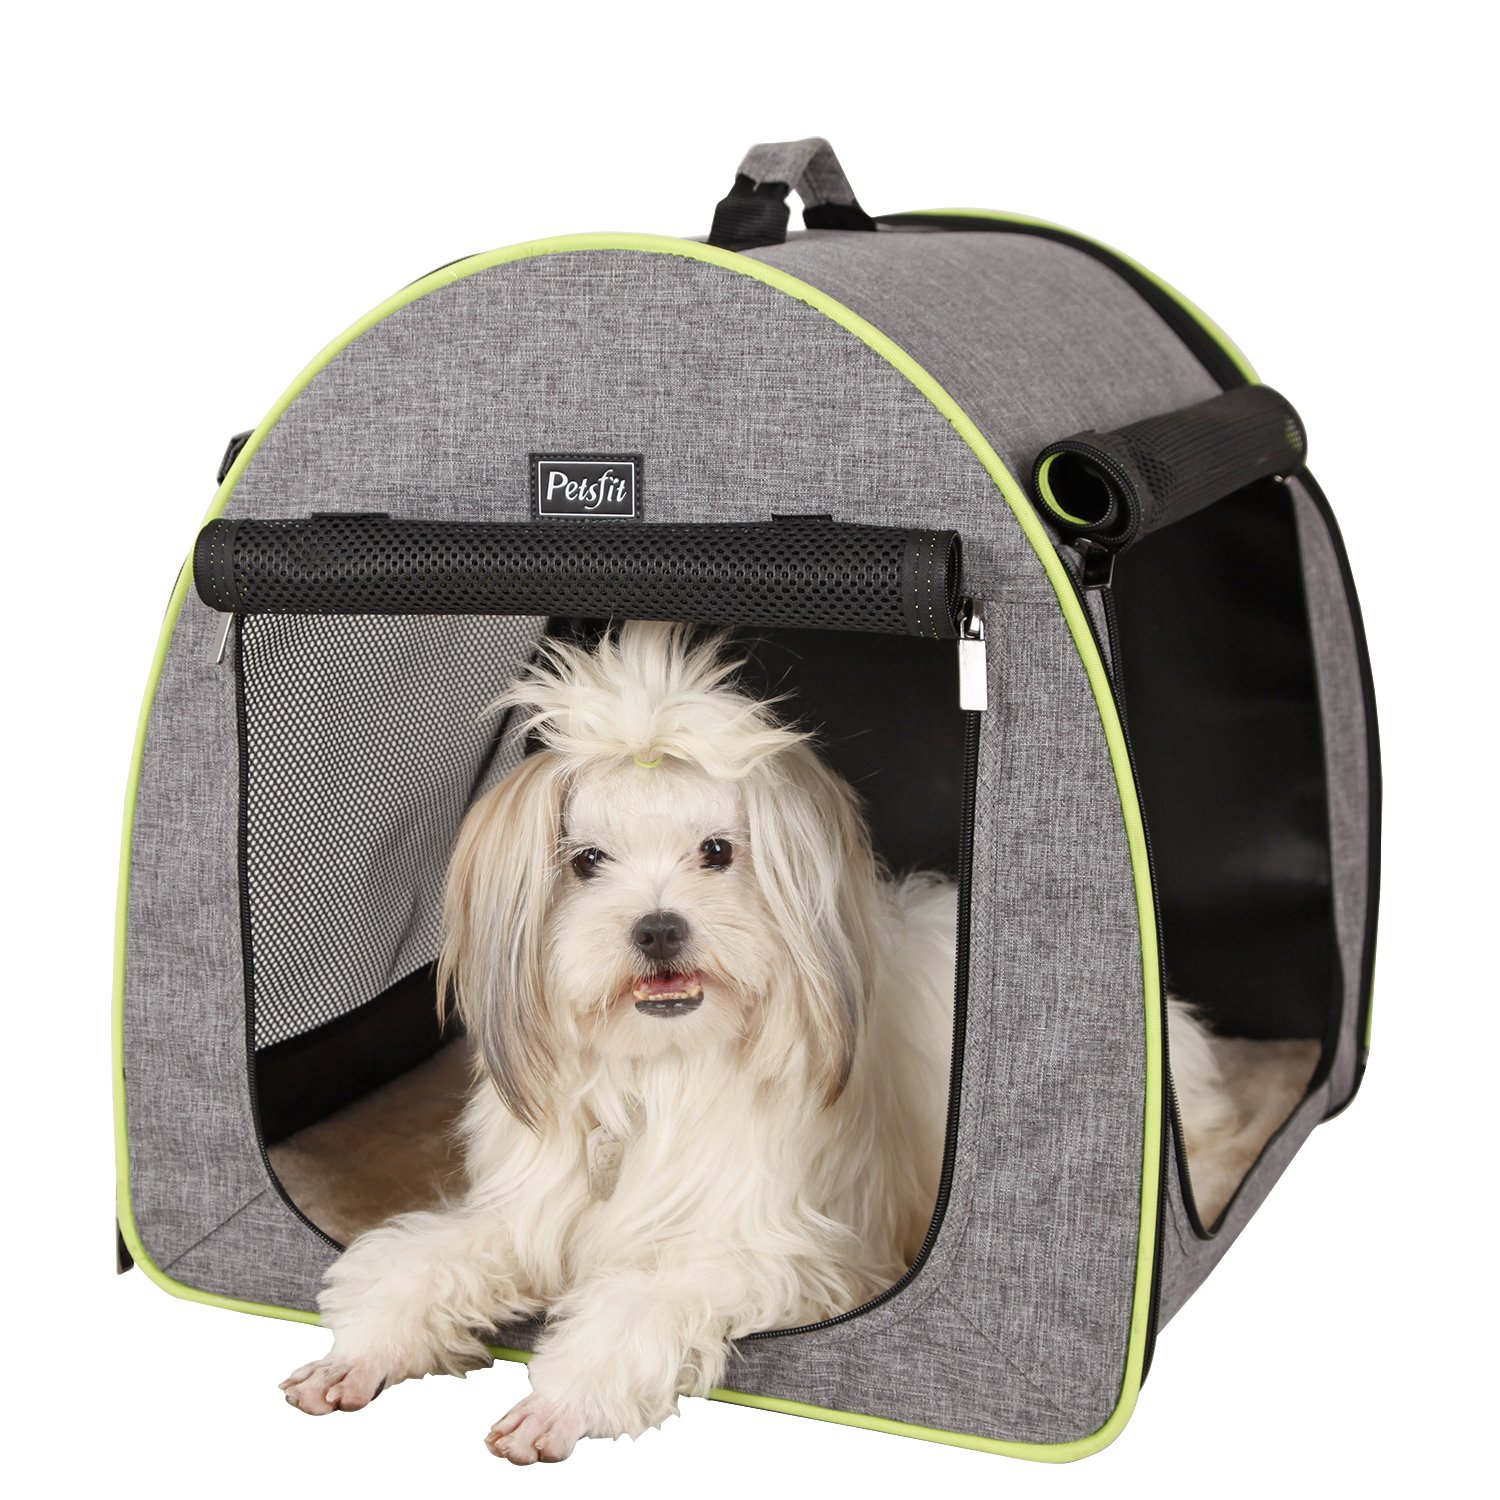 Petsfit 20''X19''X20(LxWxH) Inches Soft Portable Dog Crate/Cat Crate/Foldable Pet Kennel/Indoor Outdoor Pet Home by Petsfit